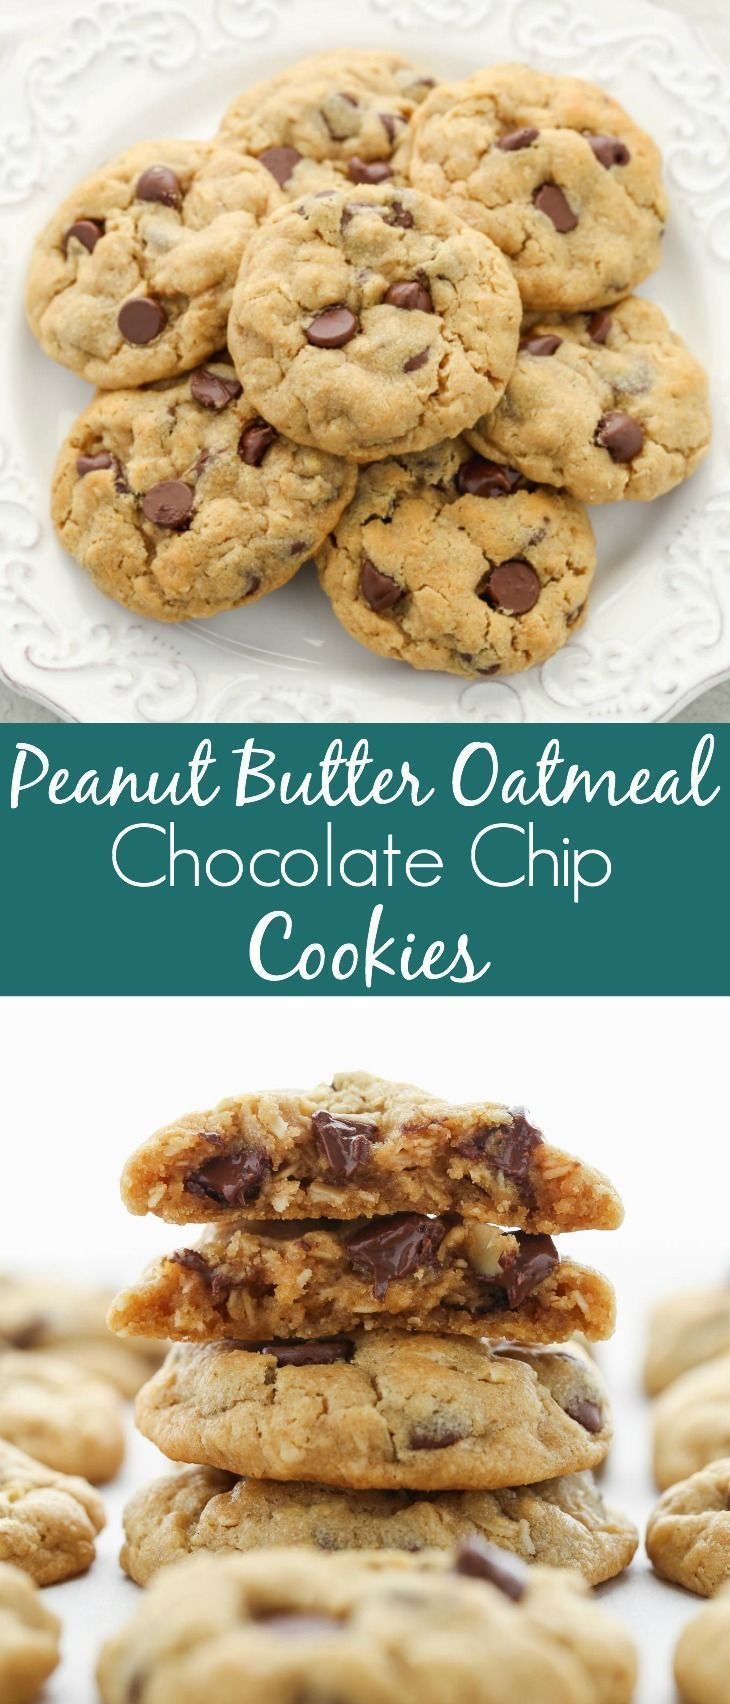 Soft Peanut Butter Oatmeal Chocolate Chip Cookies